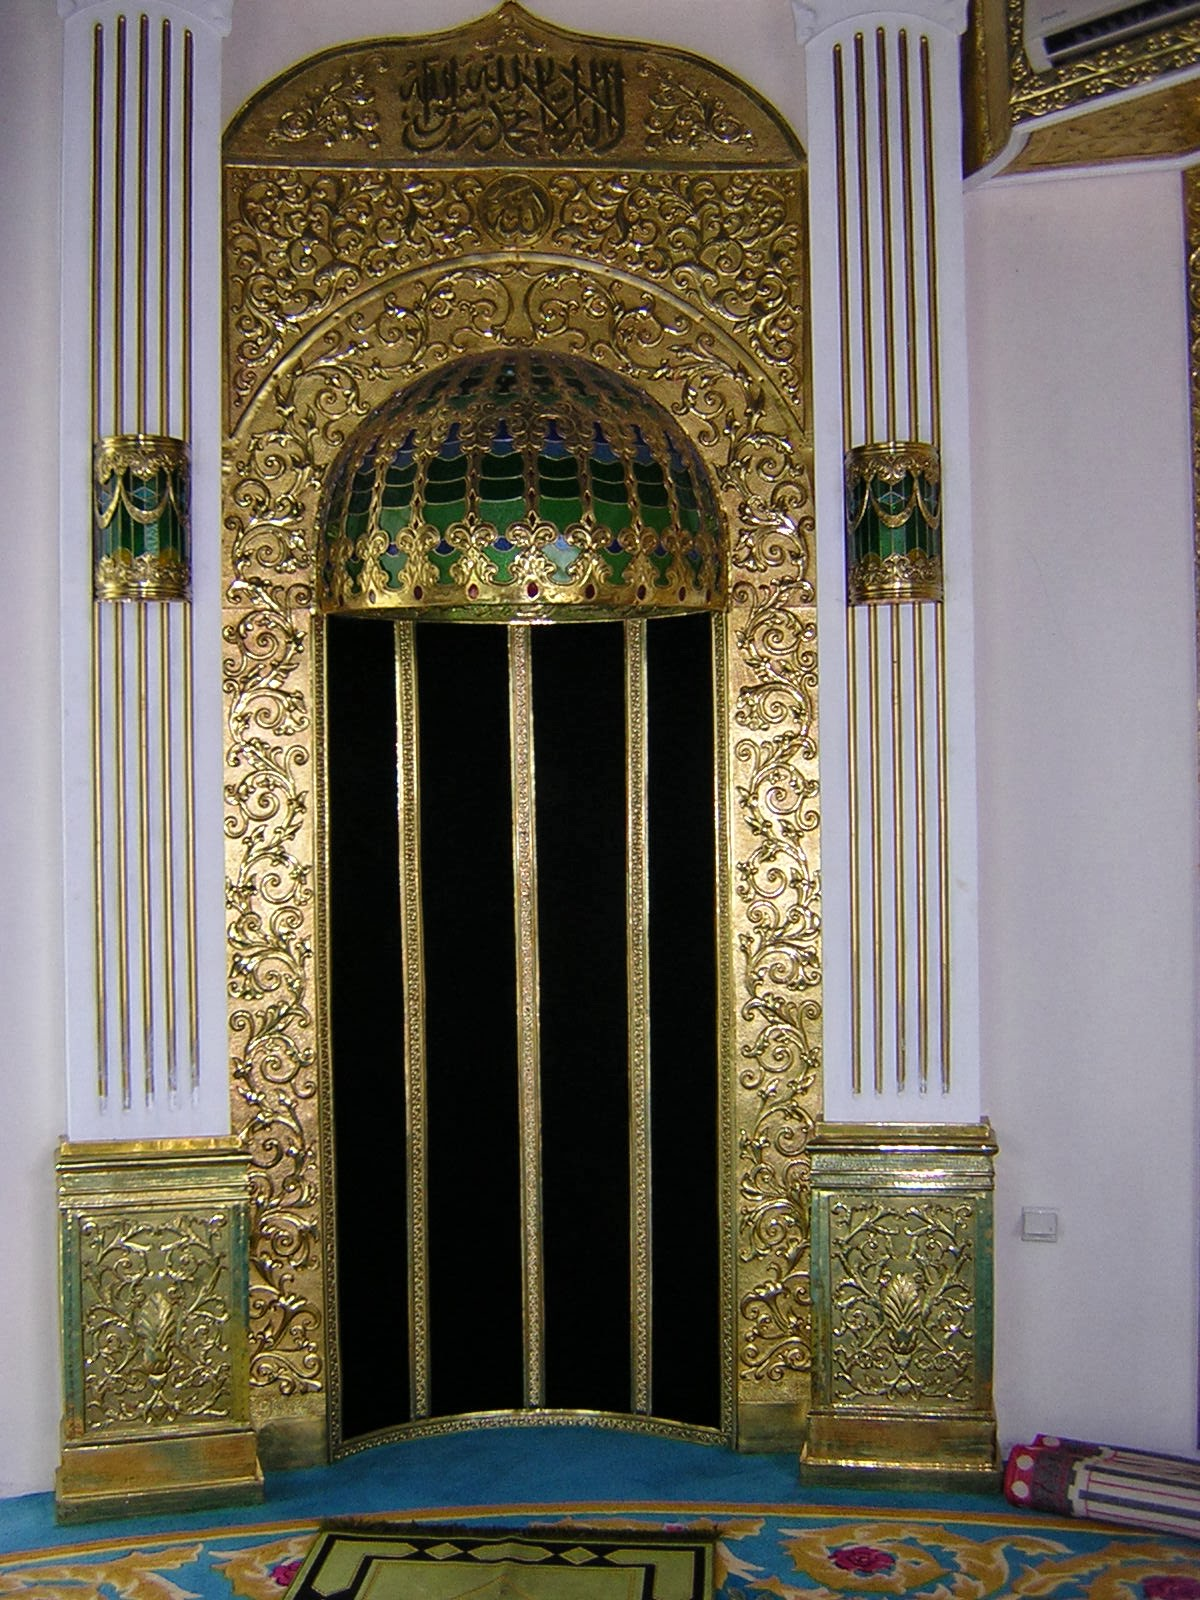 ORNAMENT MASJID